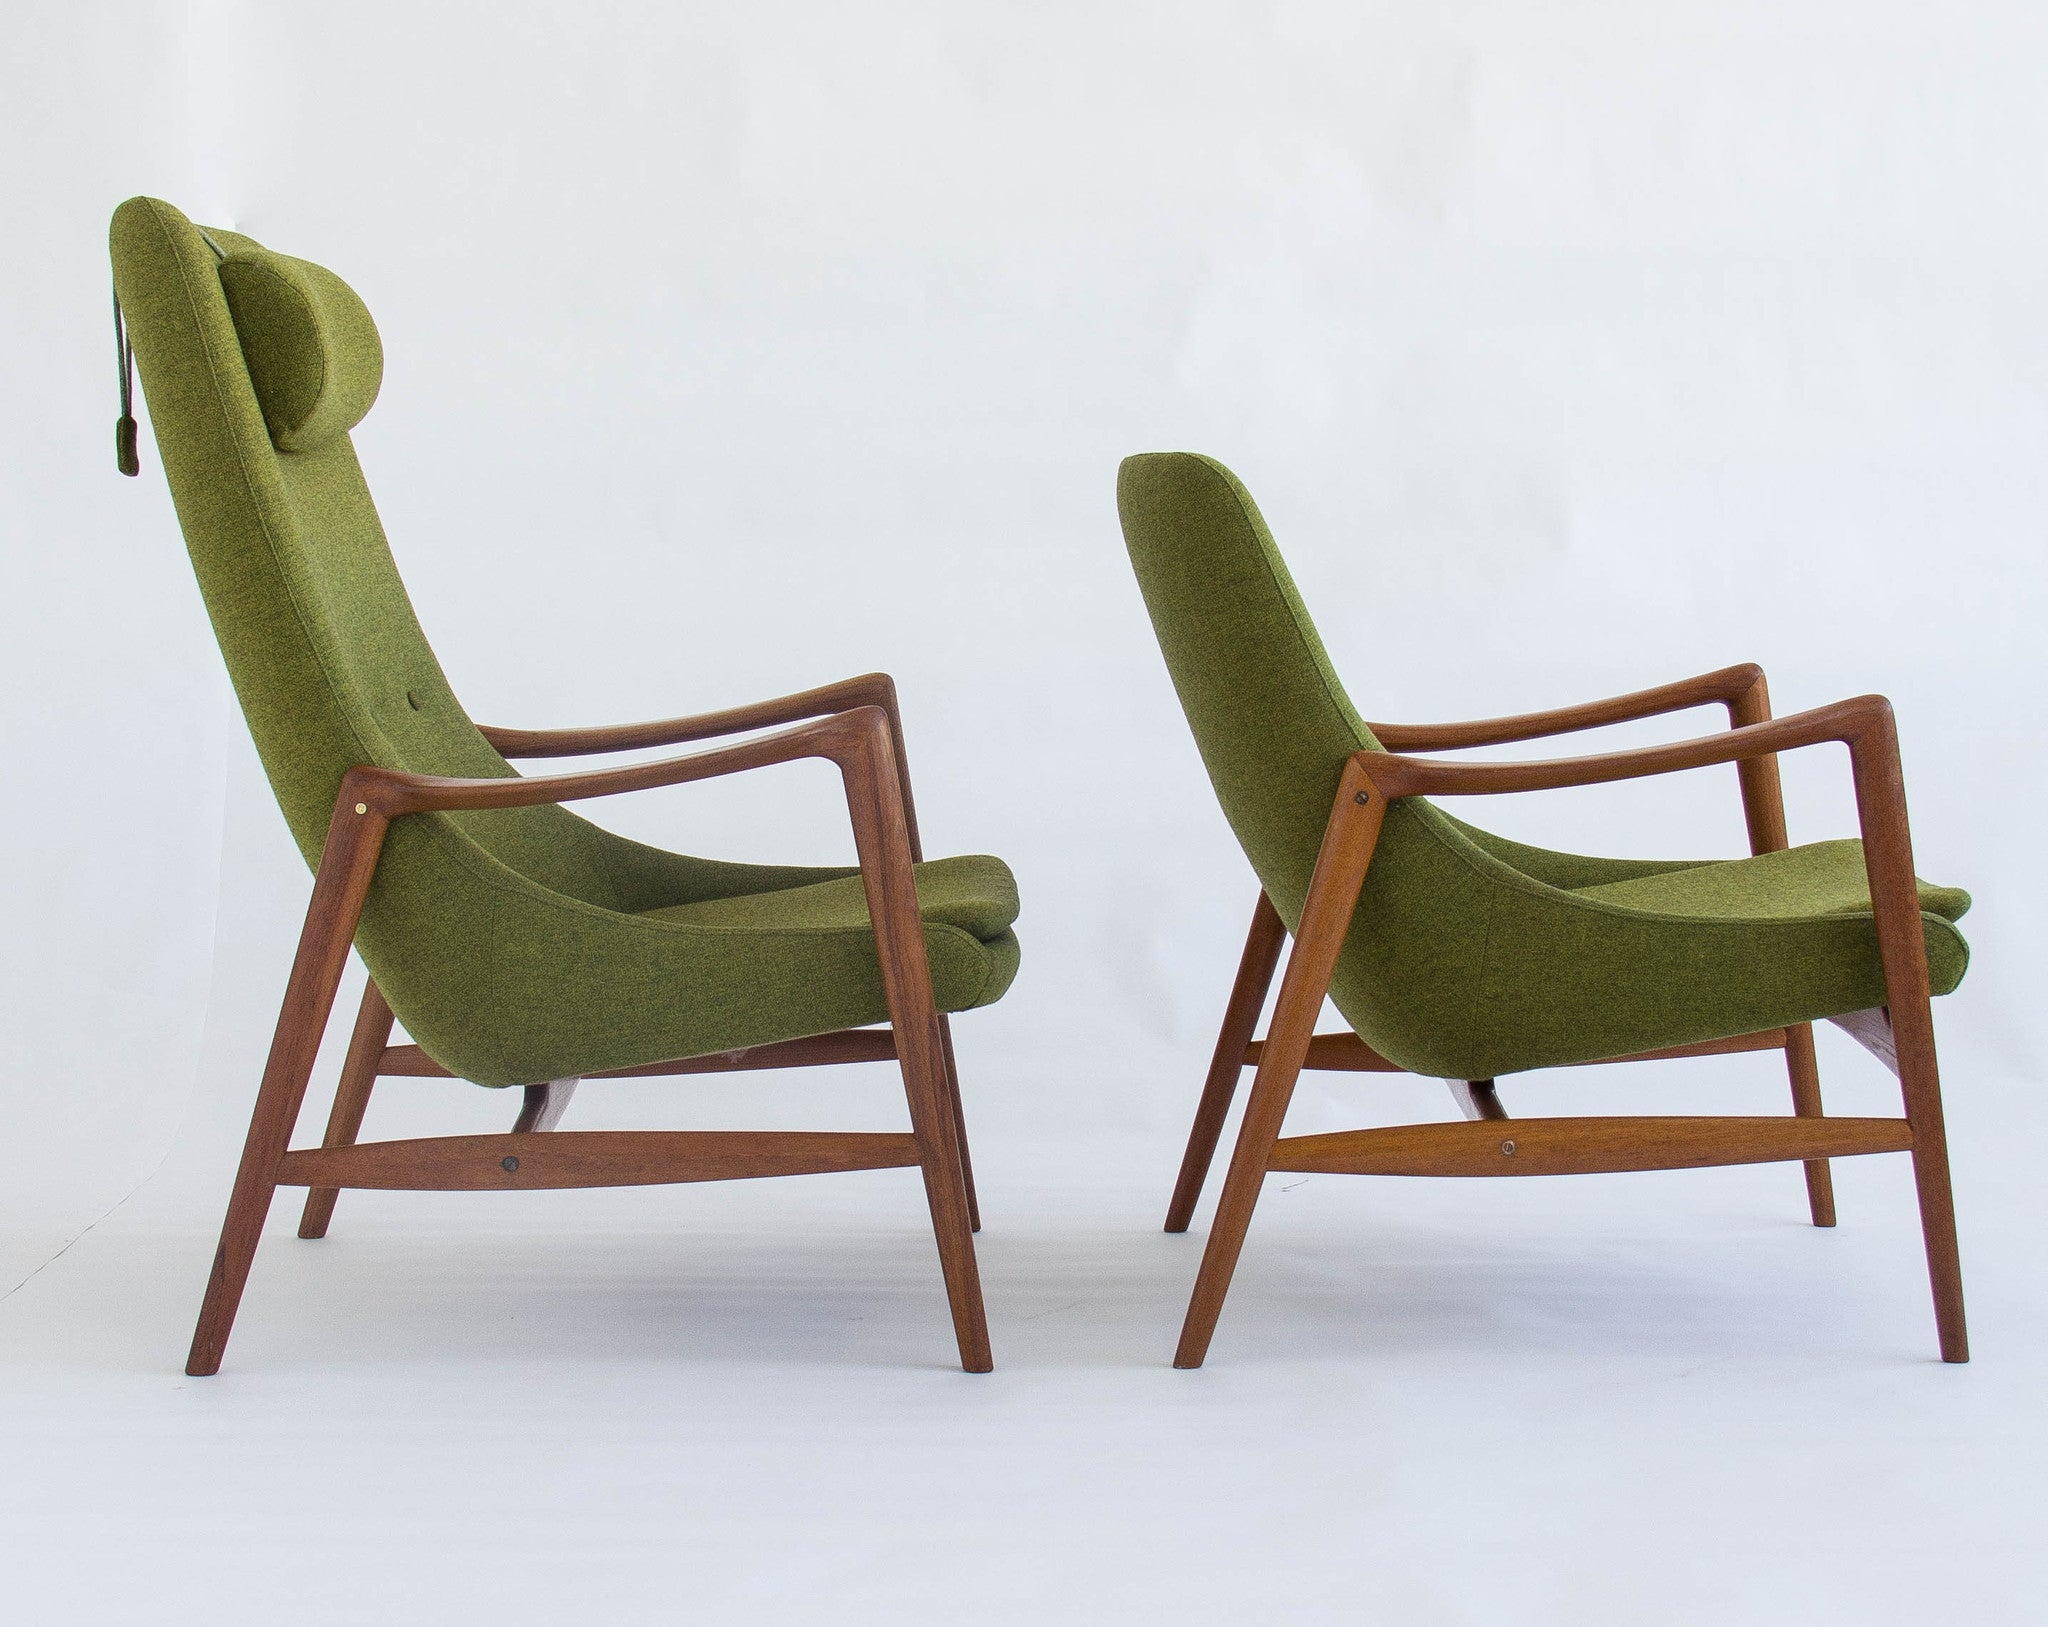 All Original Danish Pair of Teak Rastad and Relling Lounge Chairs